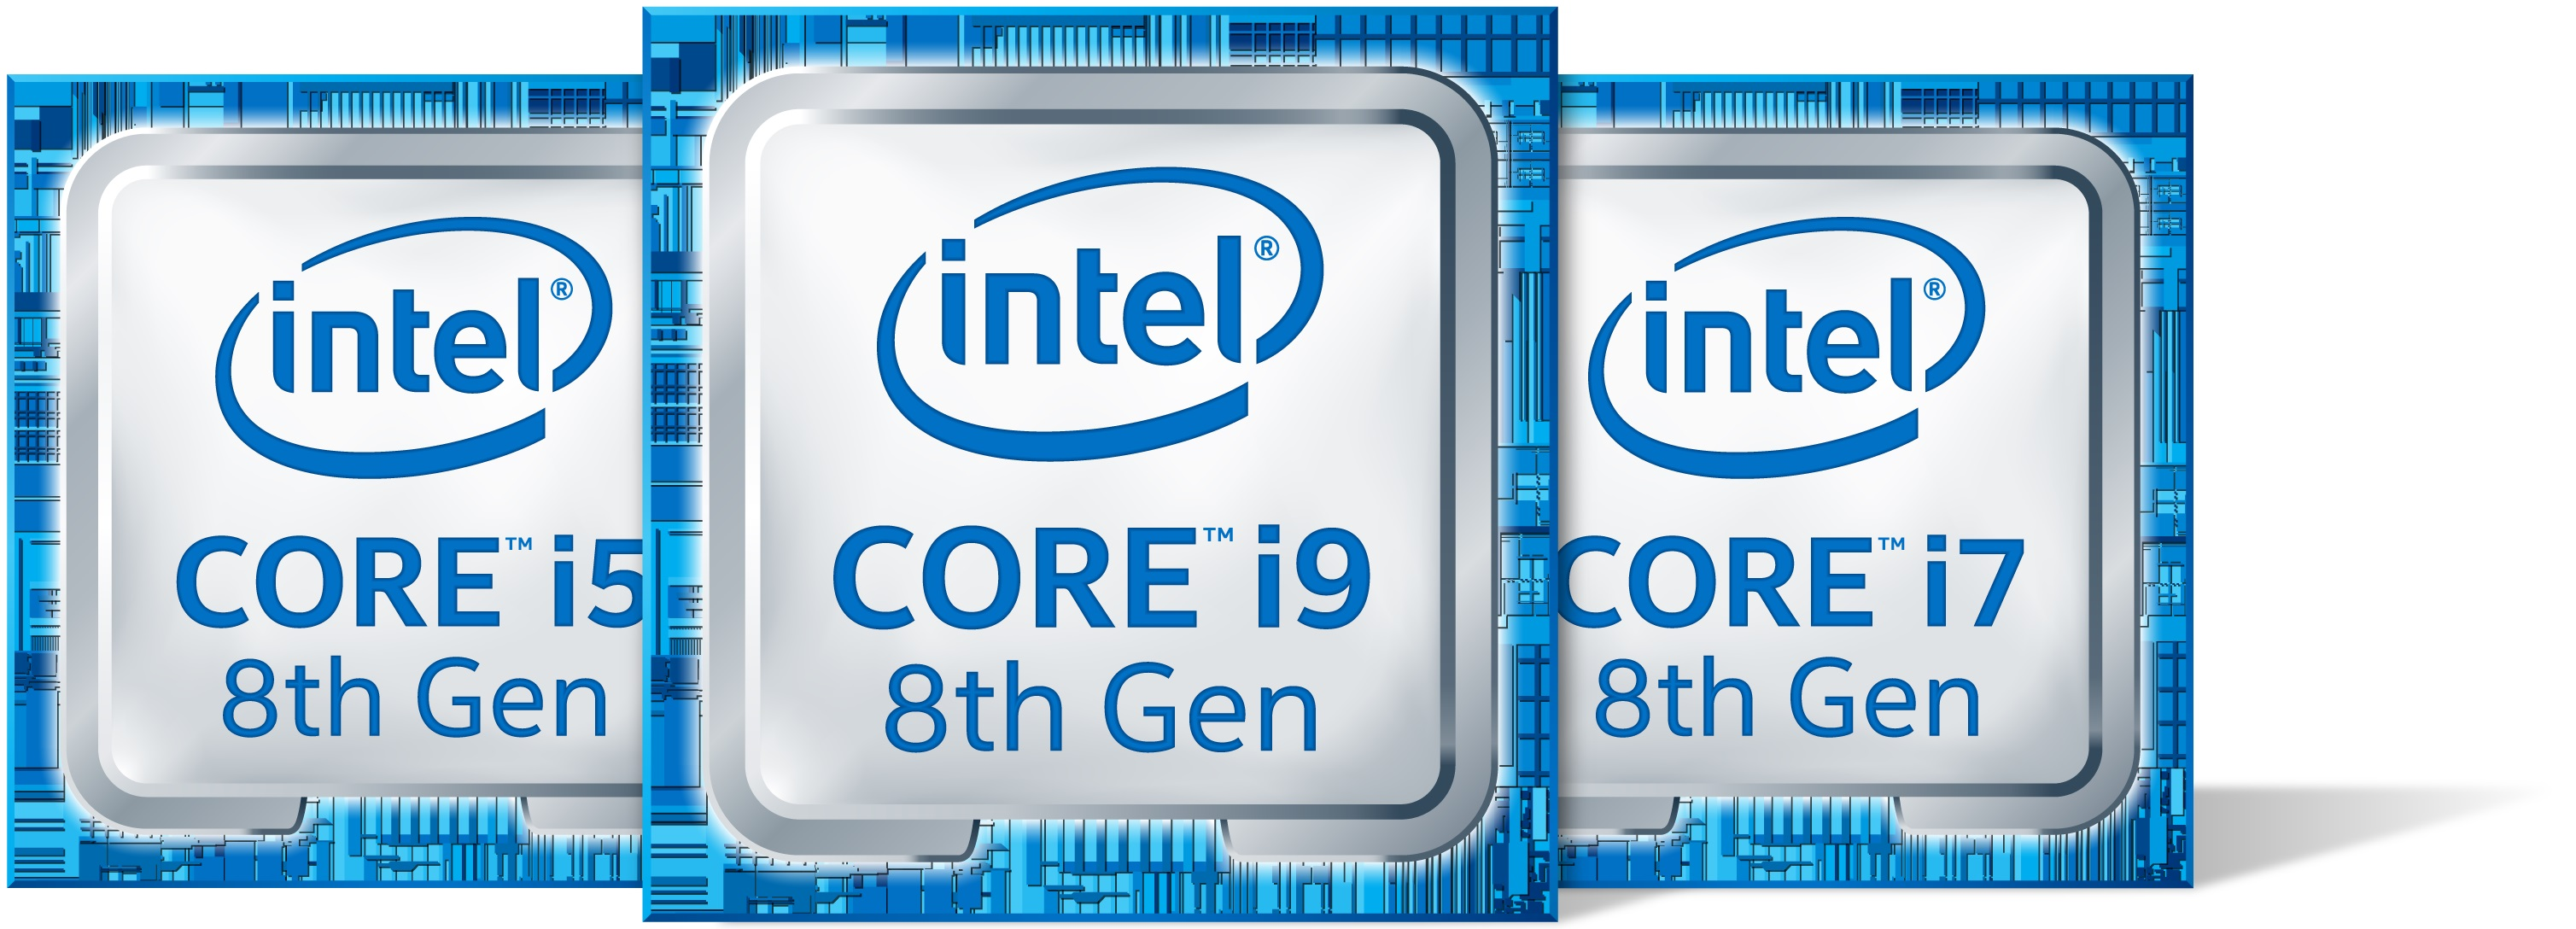 小�9.���jyi-9`�_intel unveils core i9 laptop cpu, promises the \'ultimate\'